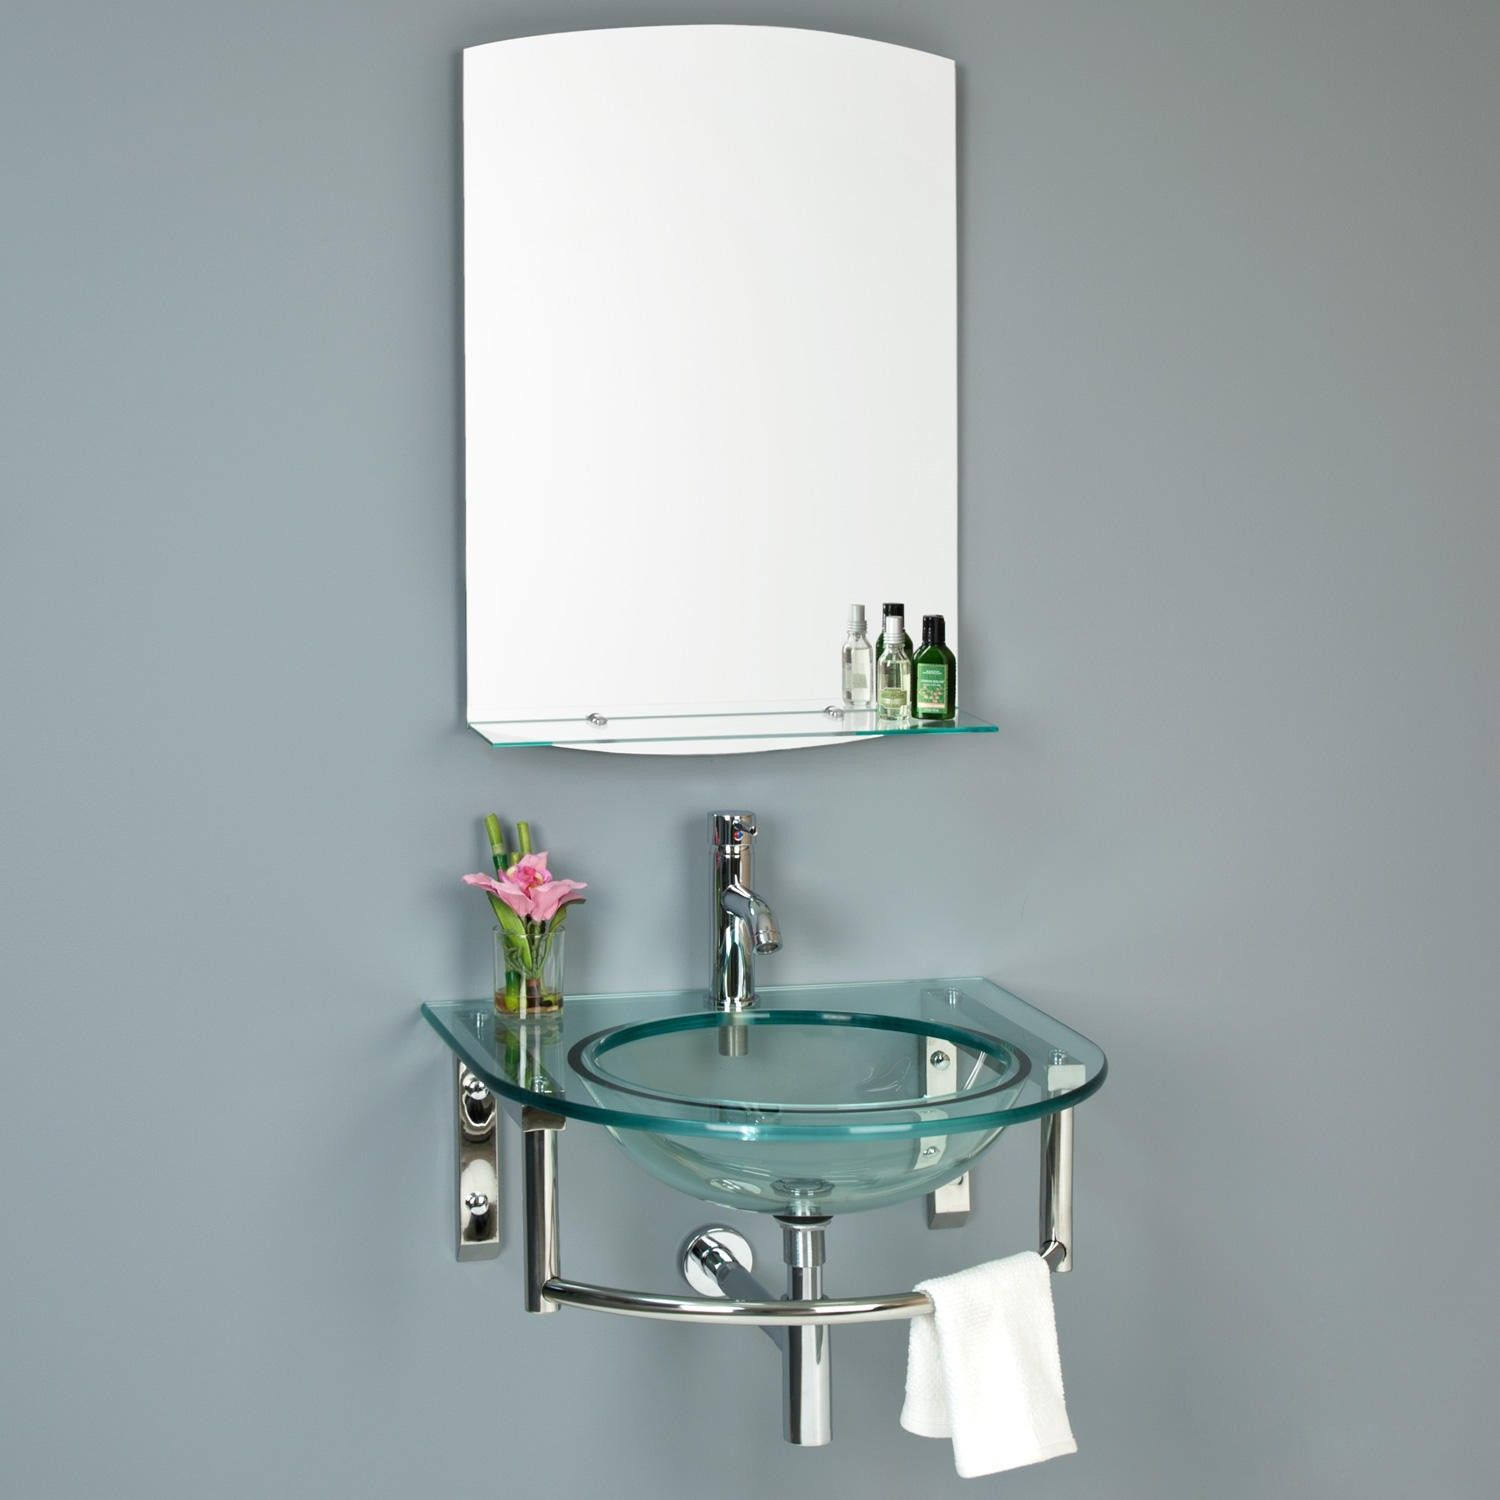 Lowry Wall-Mount Glass Sink with Mirror and Shelf | Half bath ...